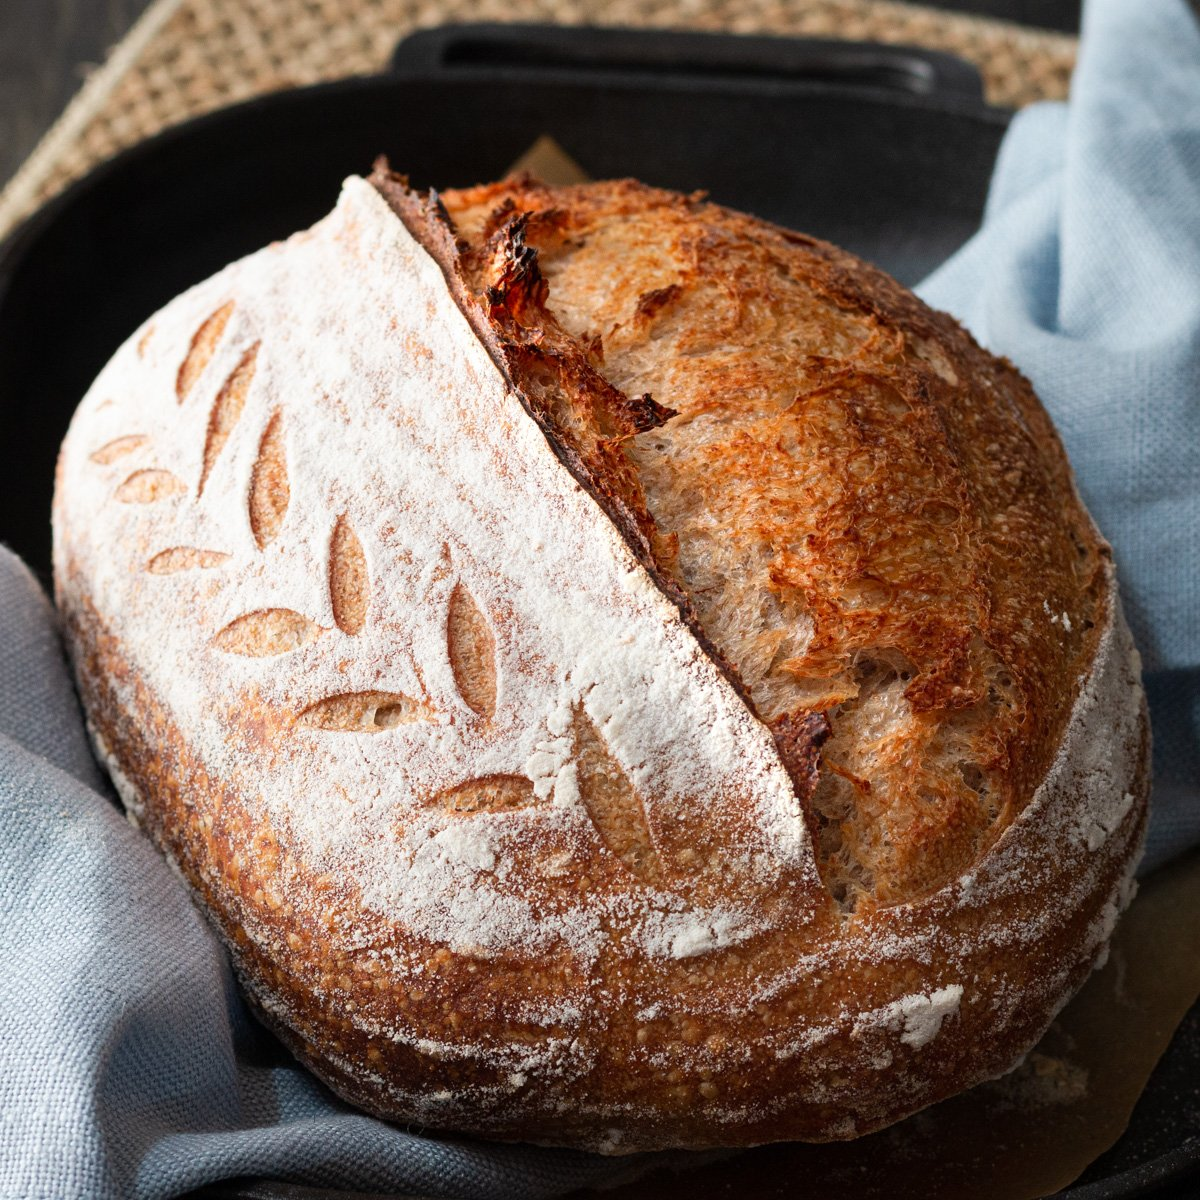 Homemade Sourdough Bread Recipe With Easy Techniques For Reliable Results